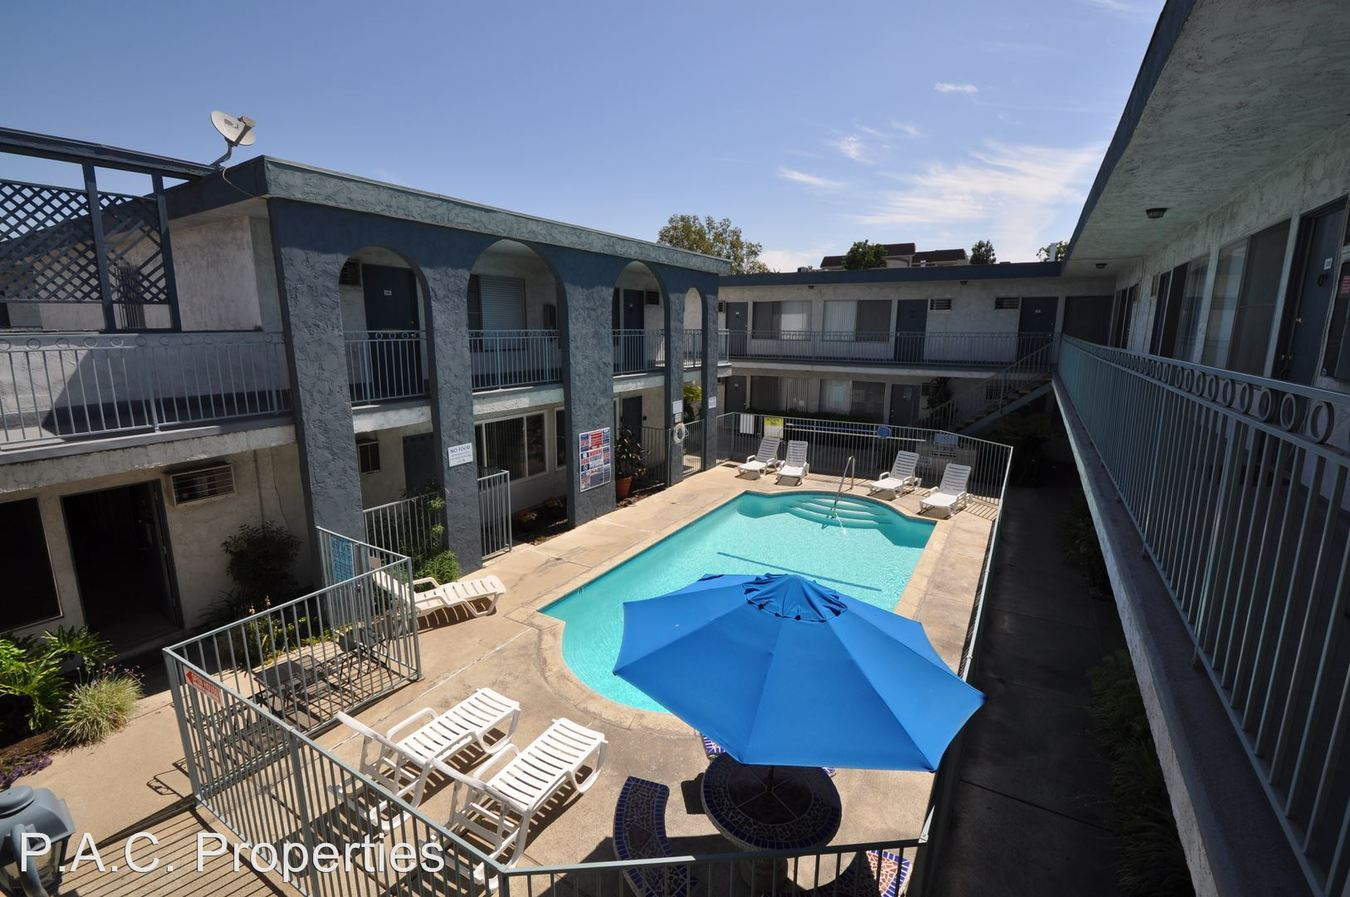 Studio 1 Bathroom Apartment for rent at 12255 Burbank Blvd in Valley Village, CA